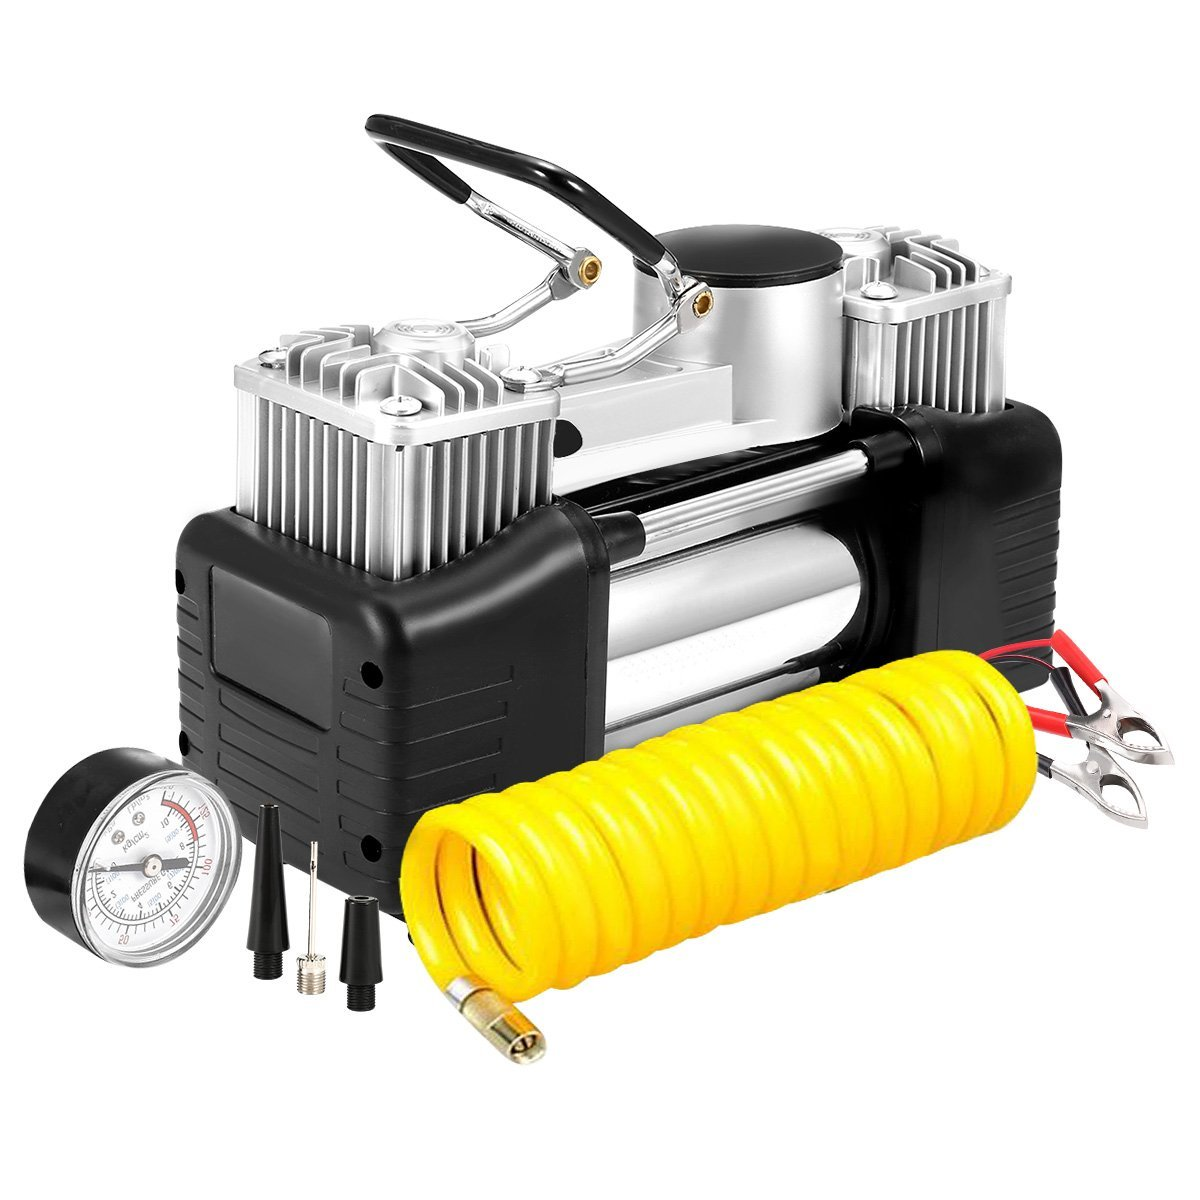 12V 150PSI Portable Dual Cylinder Air Pump Air Compressor Tire Inflator For Car Truck RV Heavy Duty boyard 12v compressor r134a for portable 12v air conditioner unit